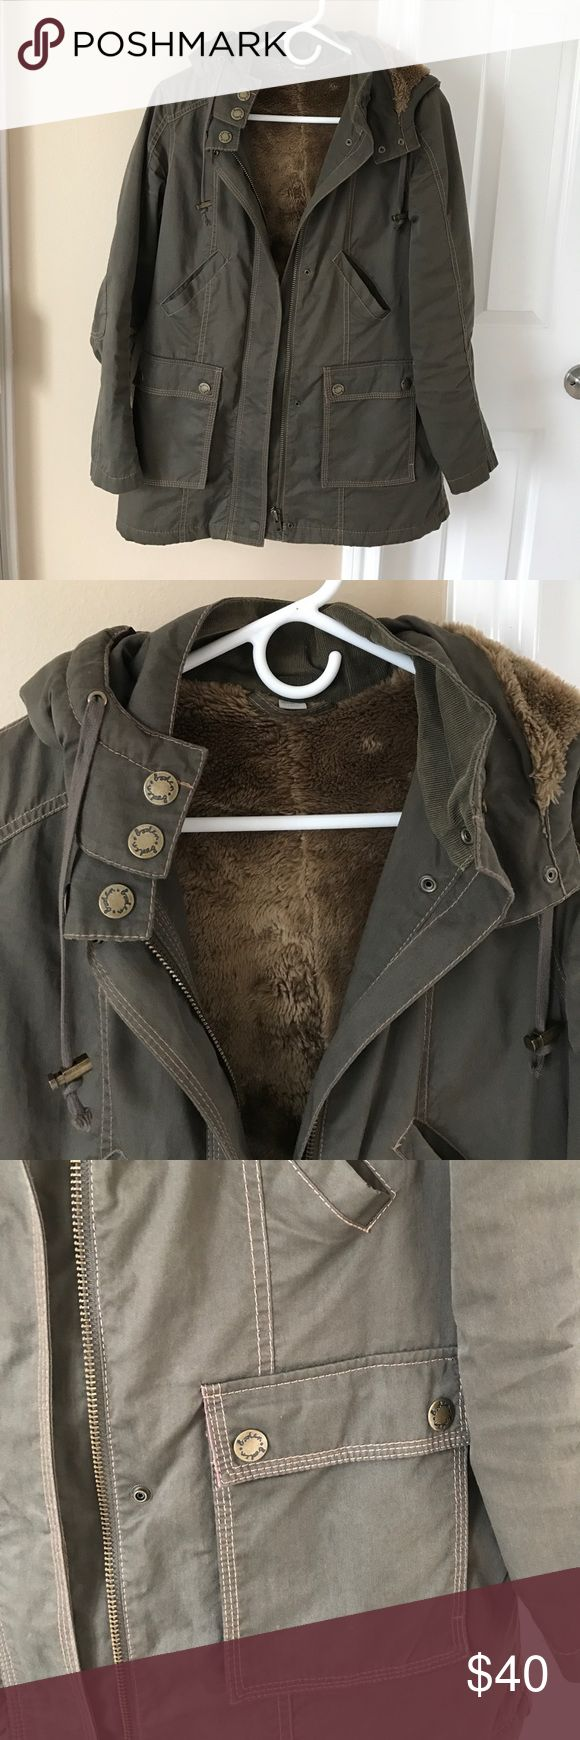 Boden Off Duty olive green parka jacket Great used condition. Has a detachable hood and lots of pockets. Very nice parka for the price! Boden Jackets & Coats Utility Jackets